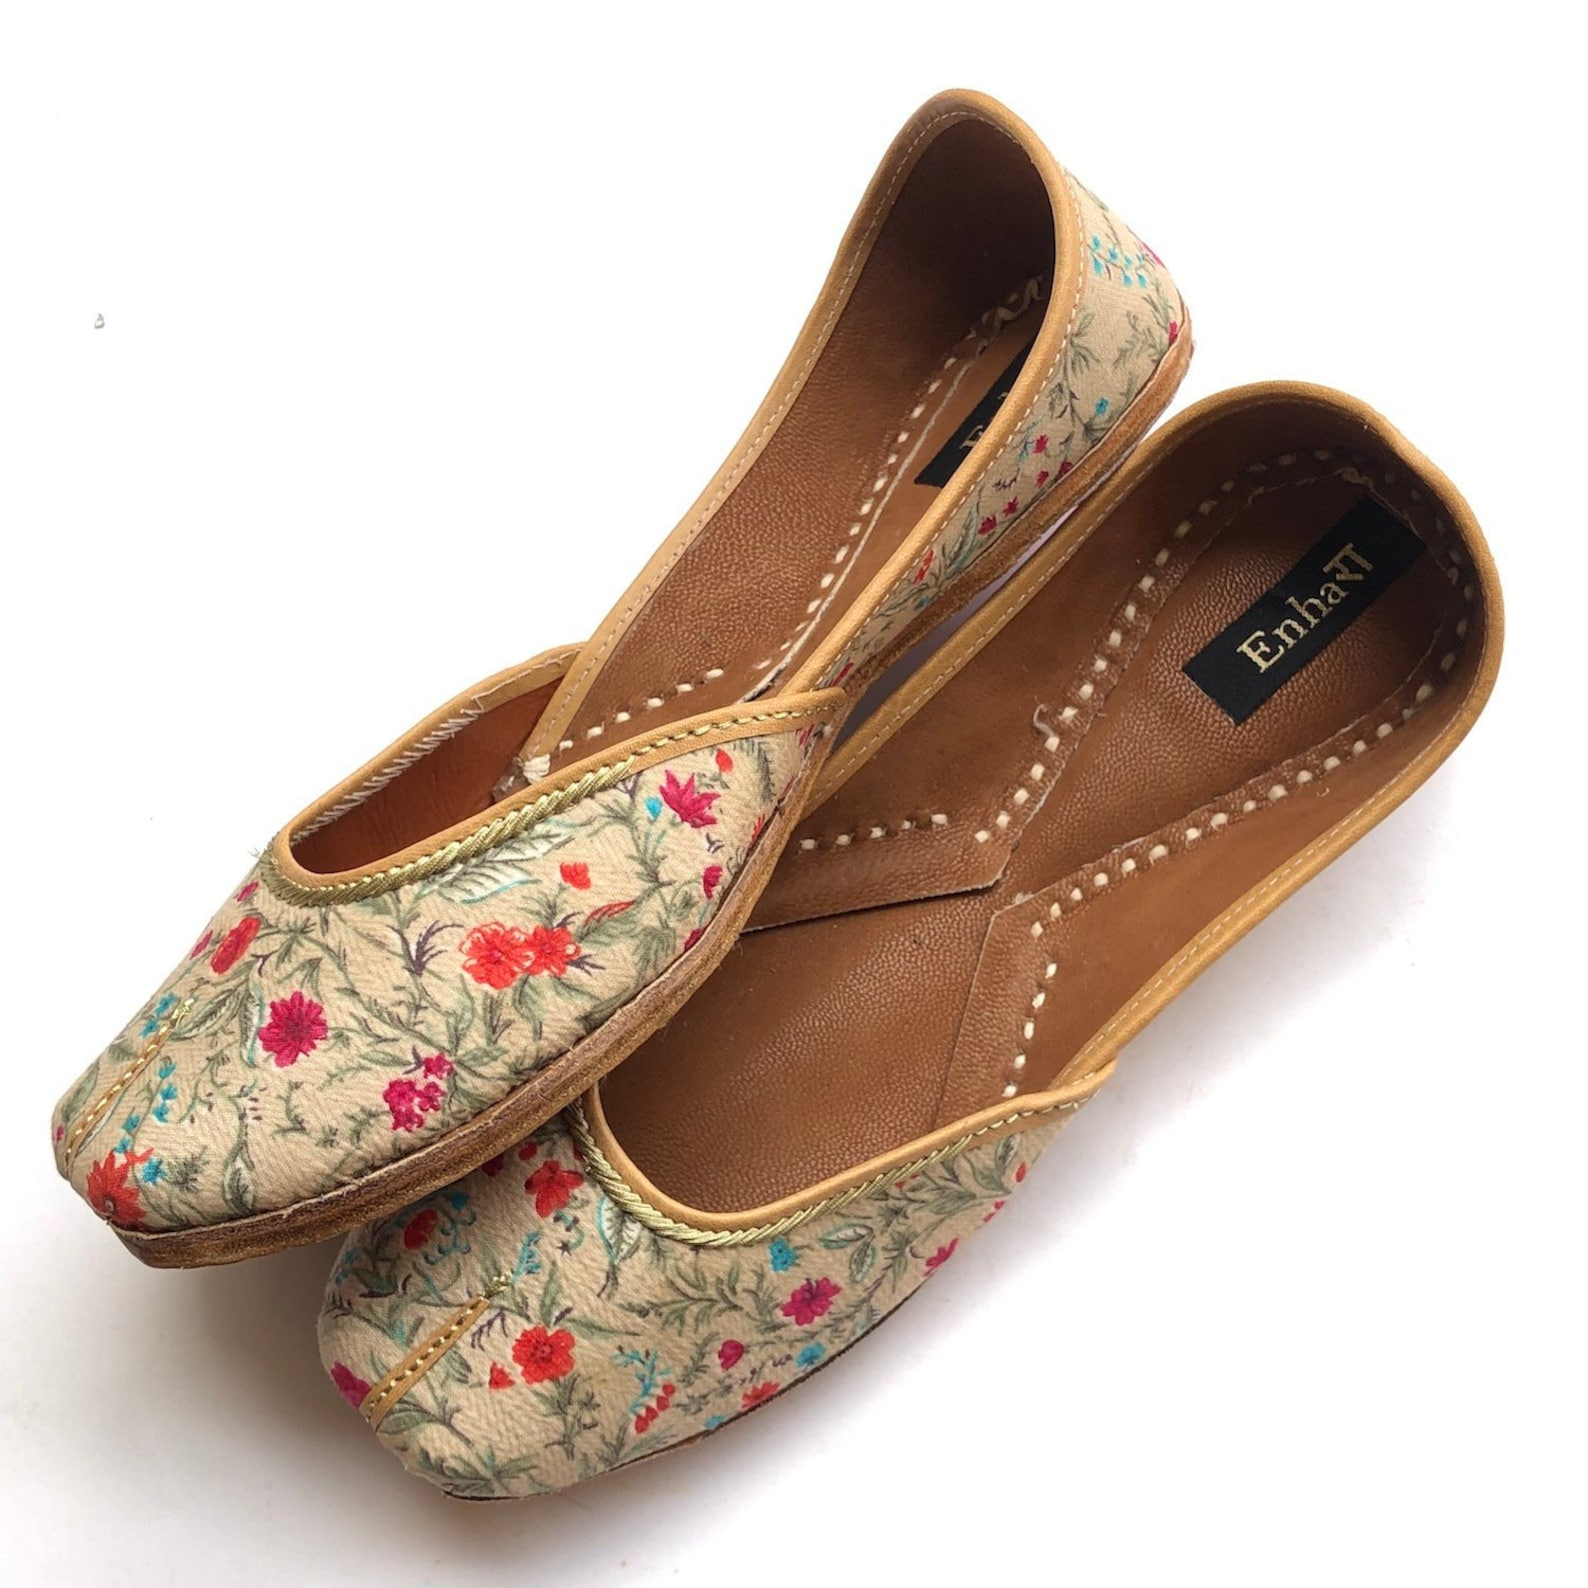 pink and white floral shoes for women, flat shoes, slip on shoes, indian shoes, ballet shoes, handmade designer shoes/juttis or